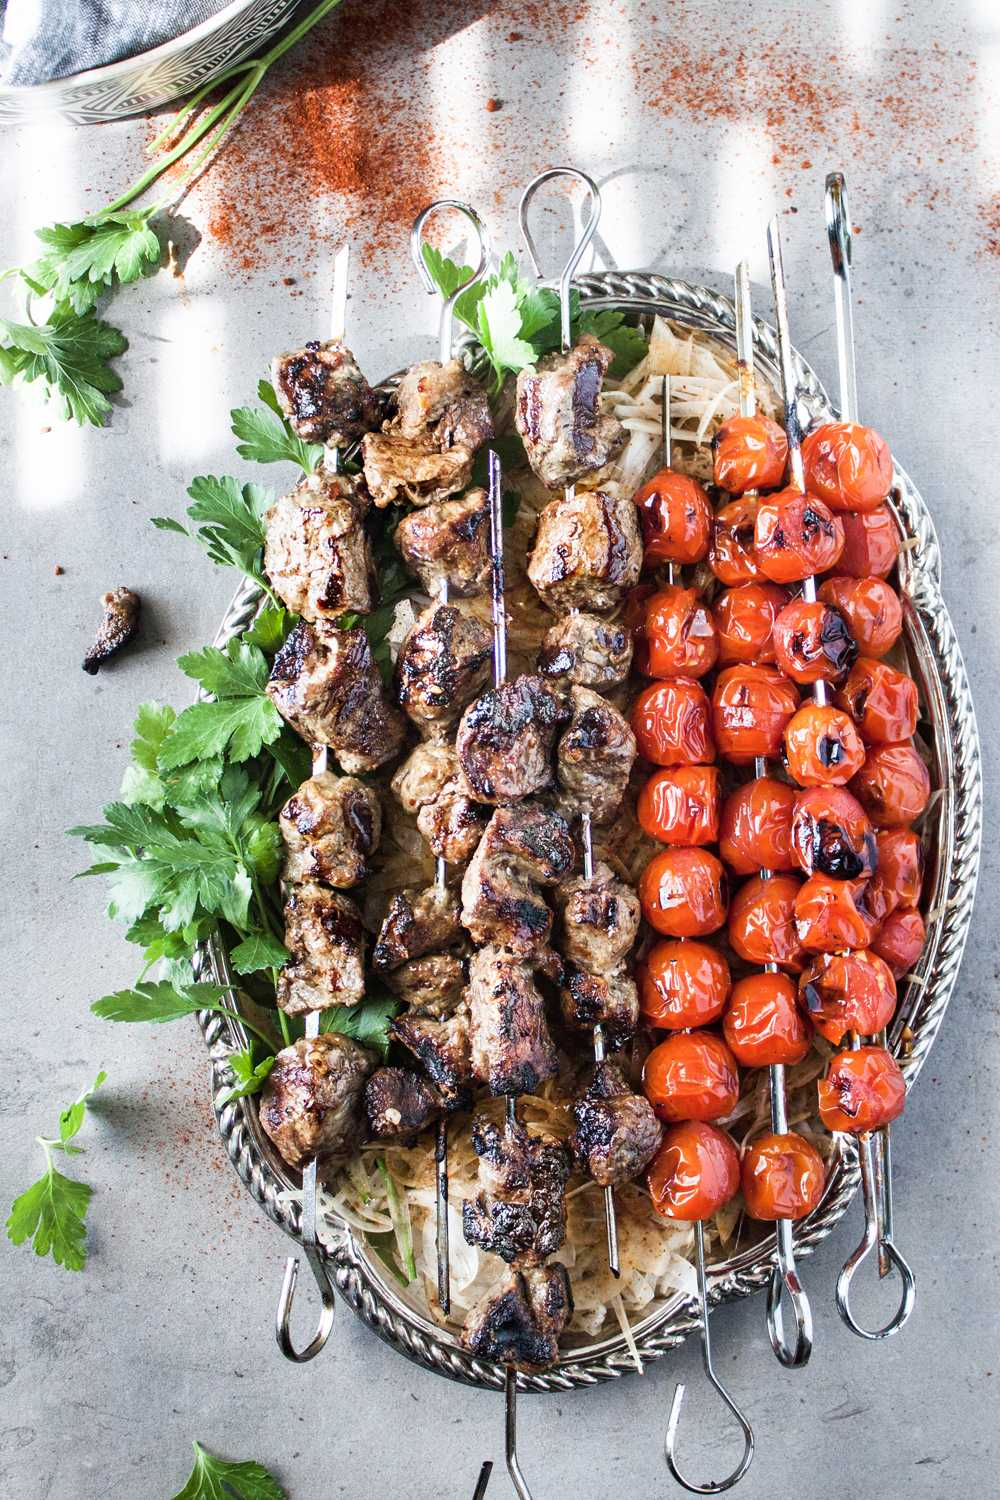 Shish kebab platter, authentic Turkish street food style.